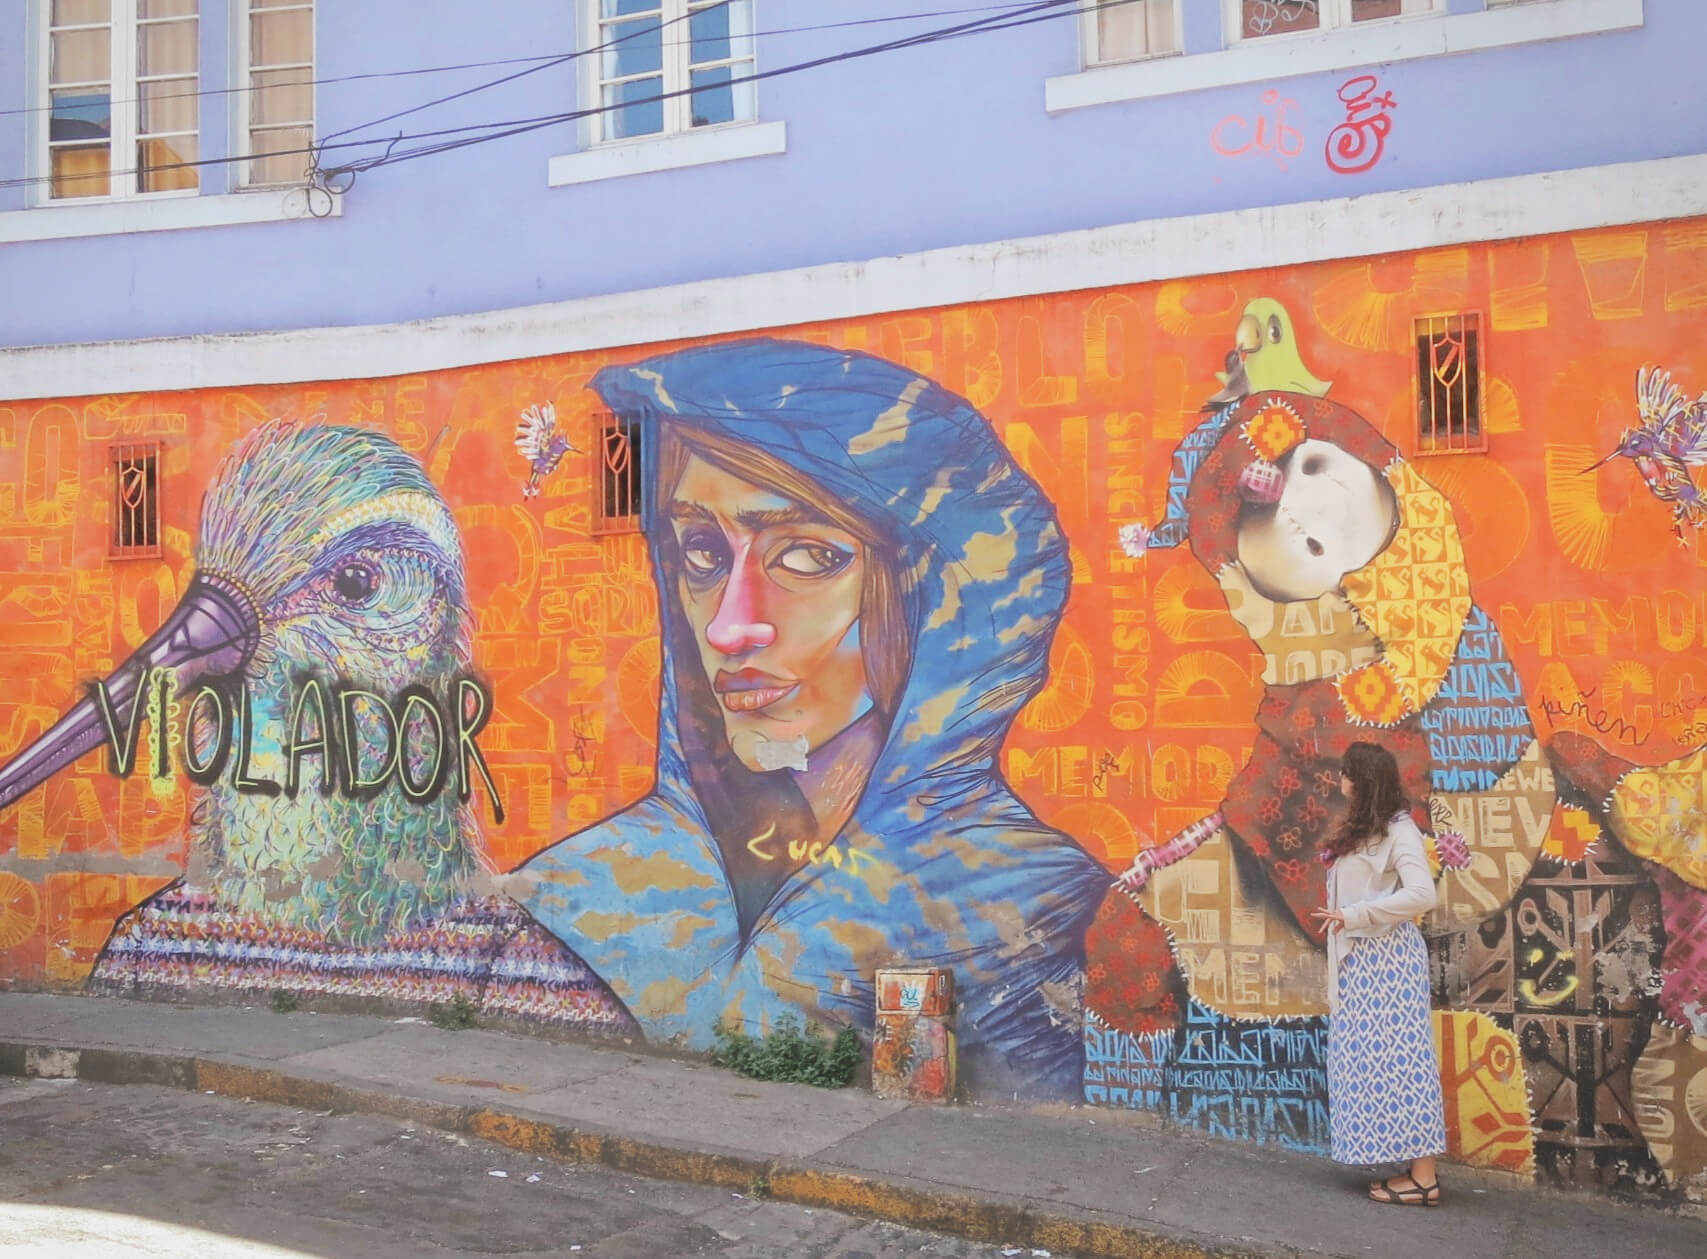 Admiring the street art in Valparaiso, Chile. Find out what to pack for South America travel.